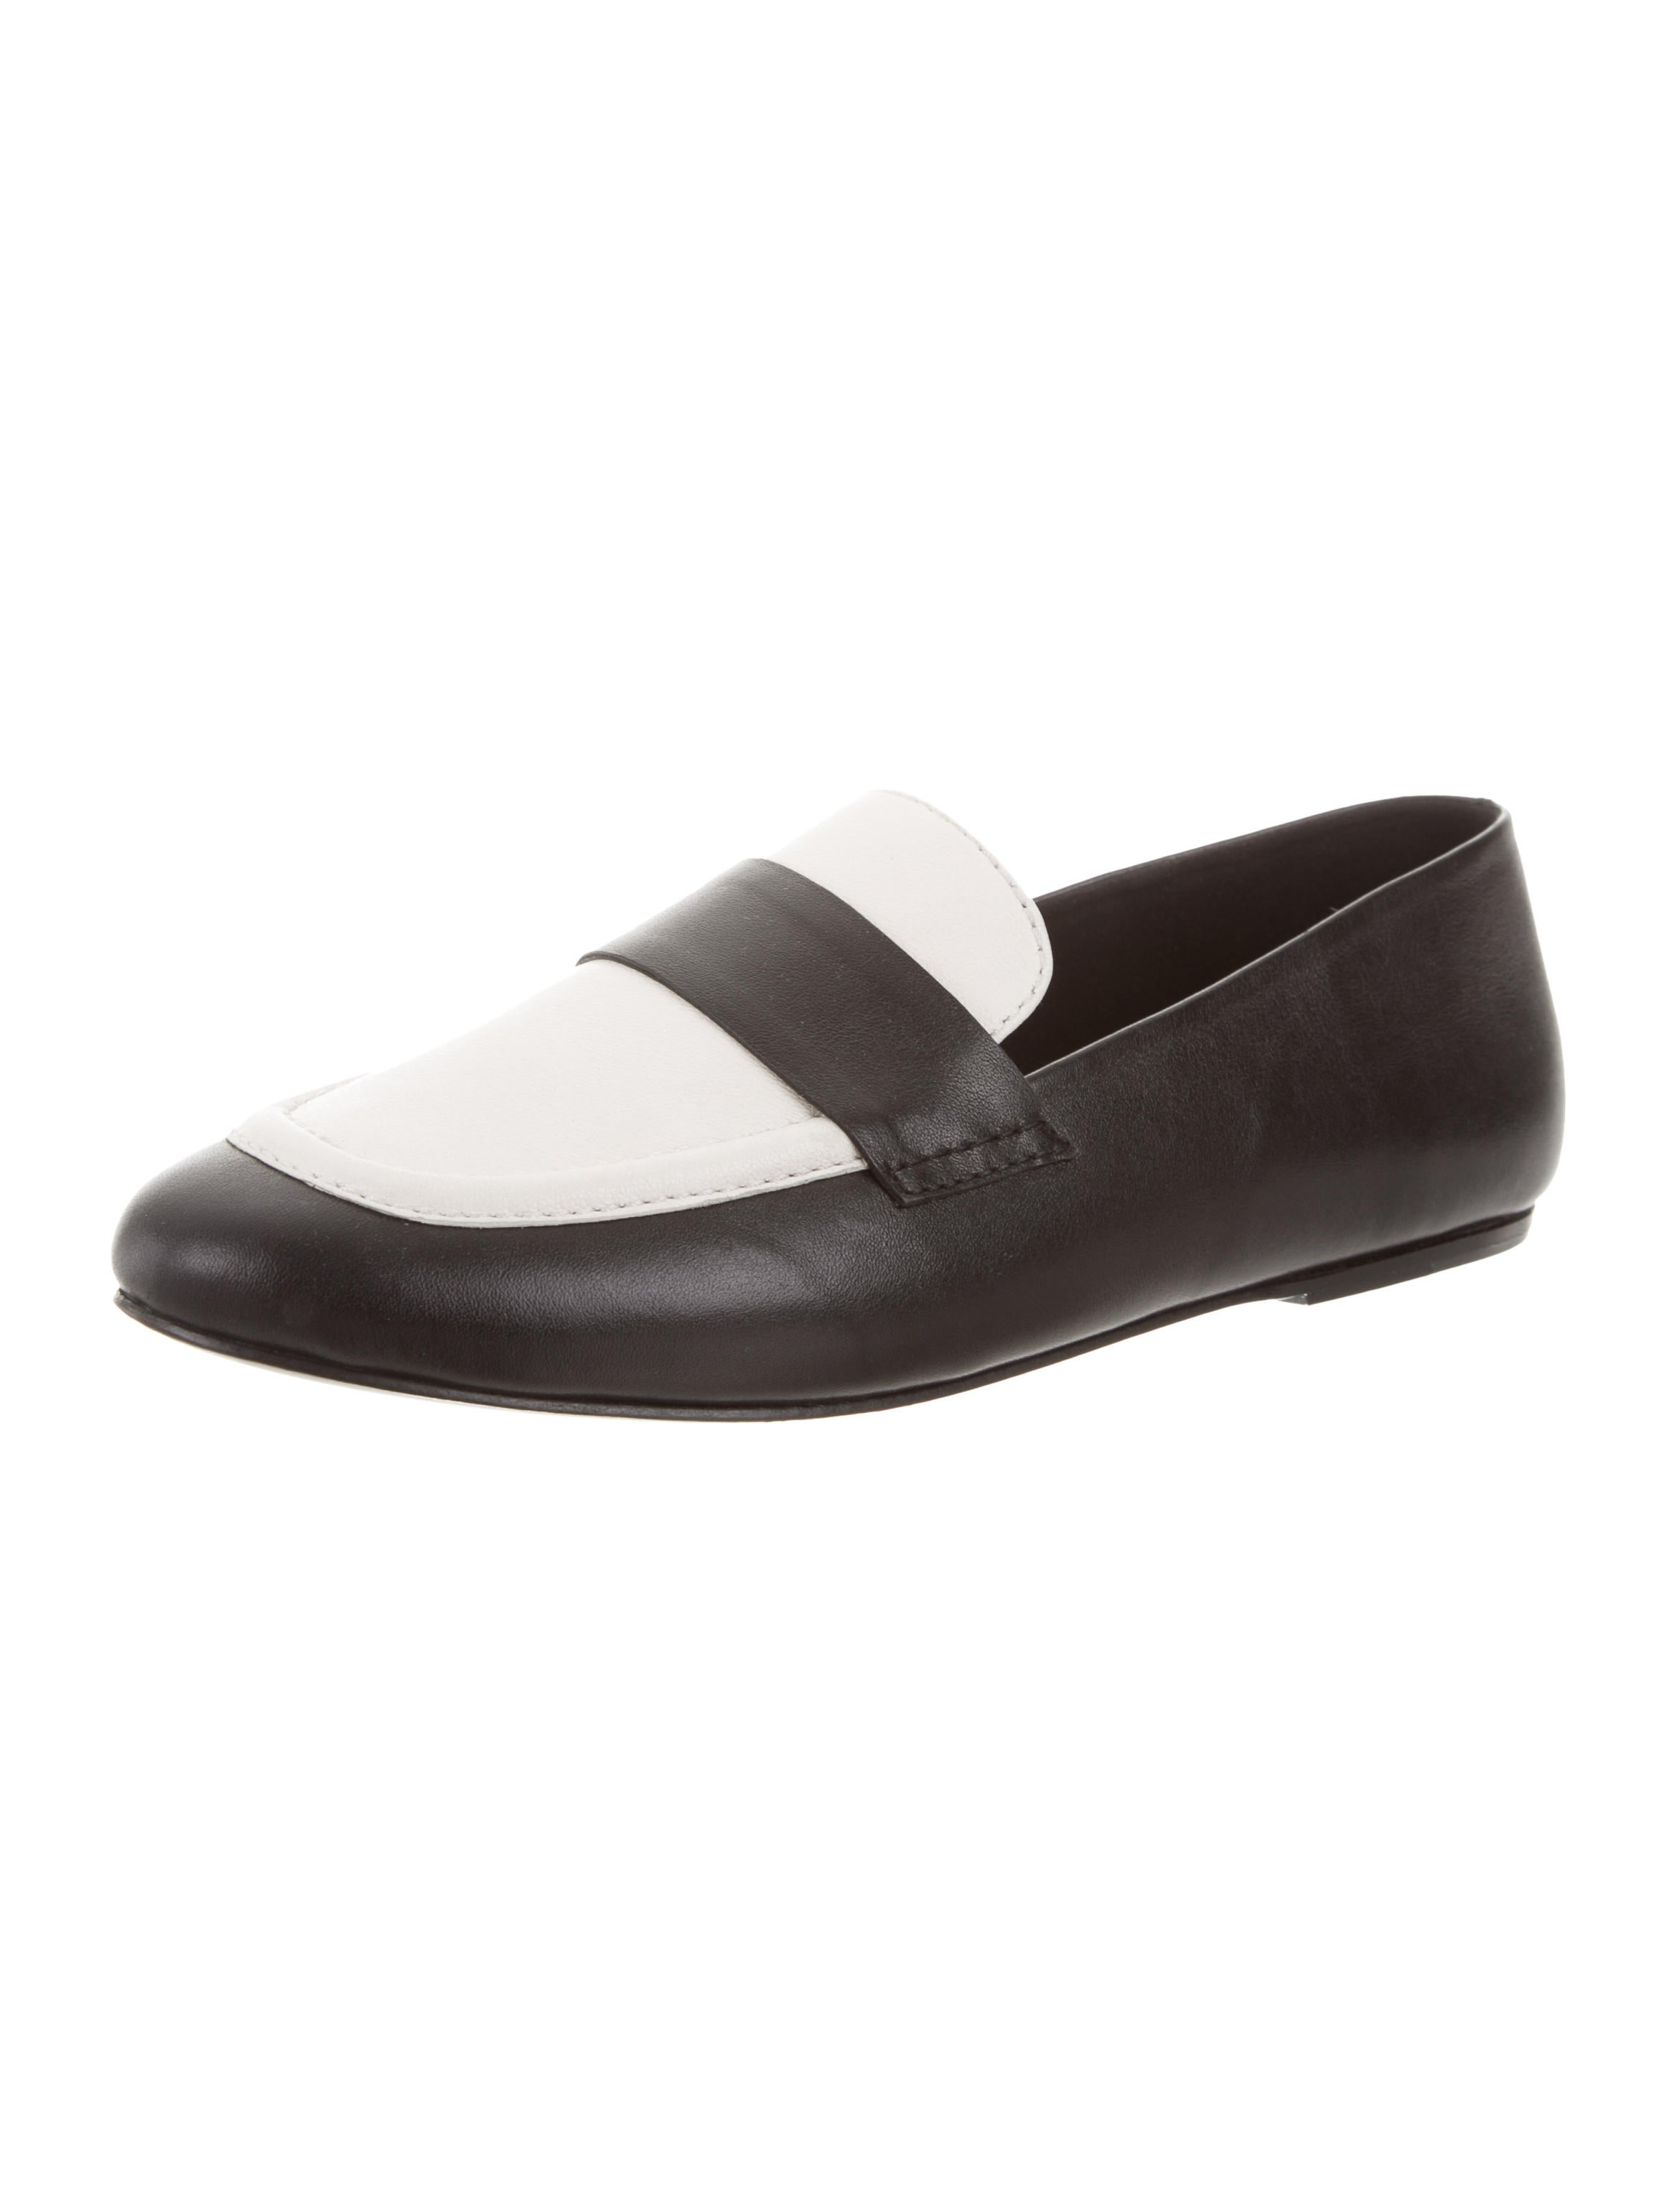 NewbarK Claude Penny Loafers w/ Tags discount collections ZPdJdLu